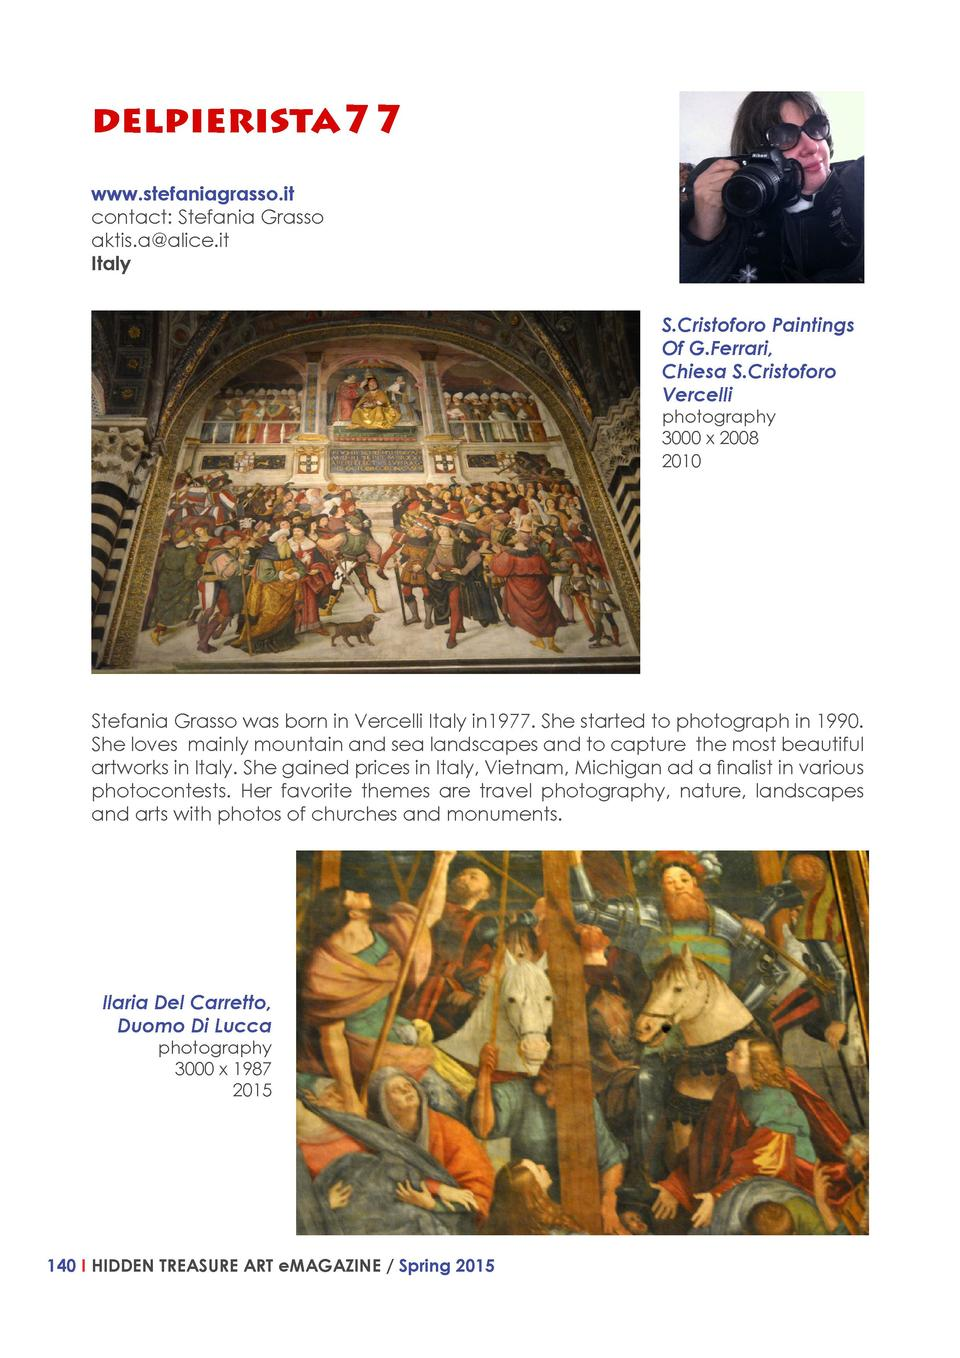 delpierista77 www.stefaniagrasso.it contact  Stefania Grasso aktis.a alice.it Italy S.Cristoforo Paintings Of G.Ferrari, C...